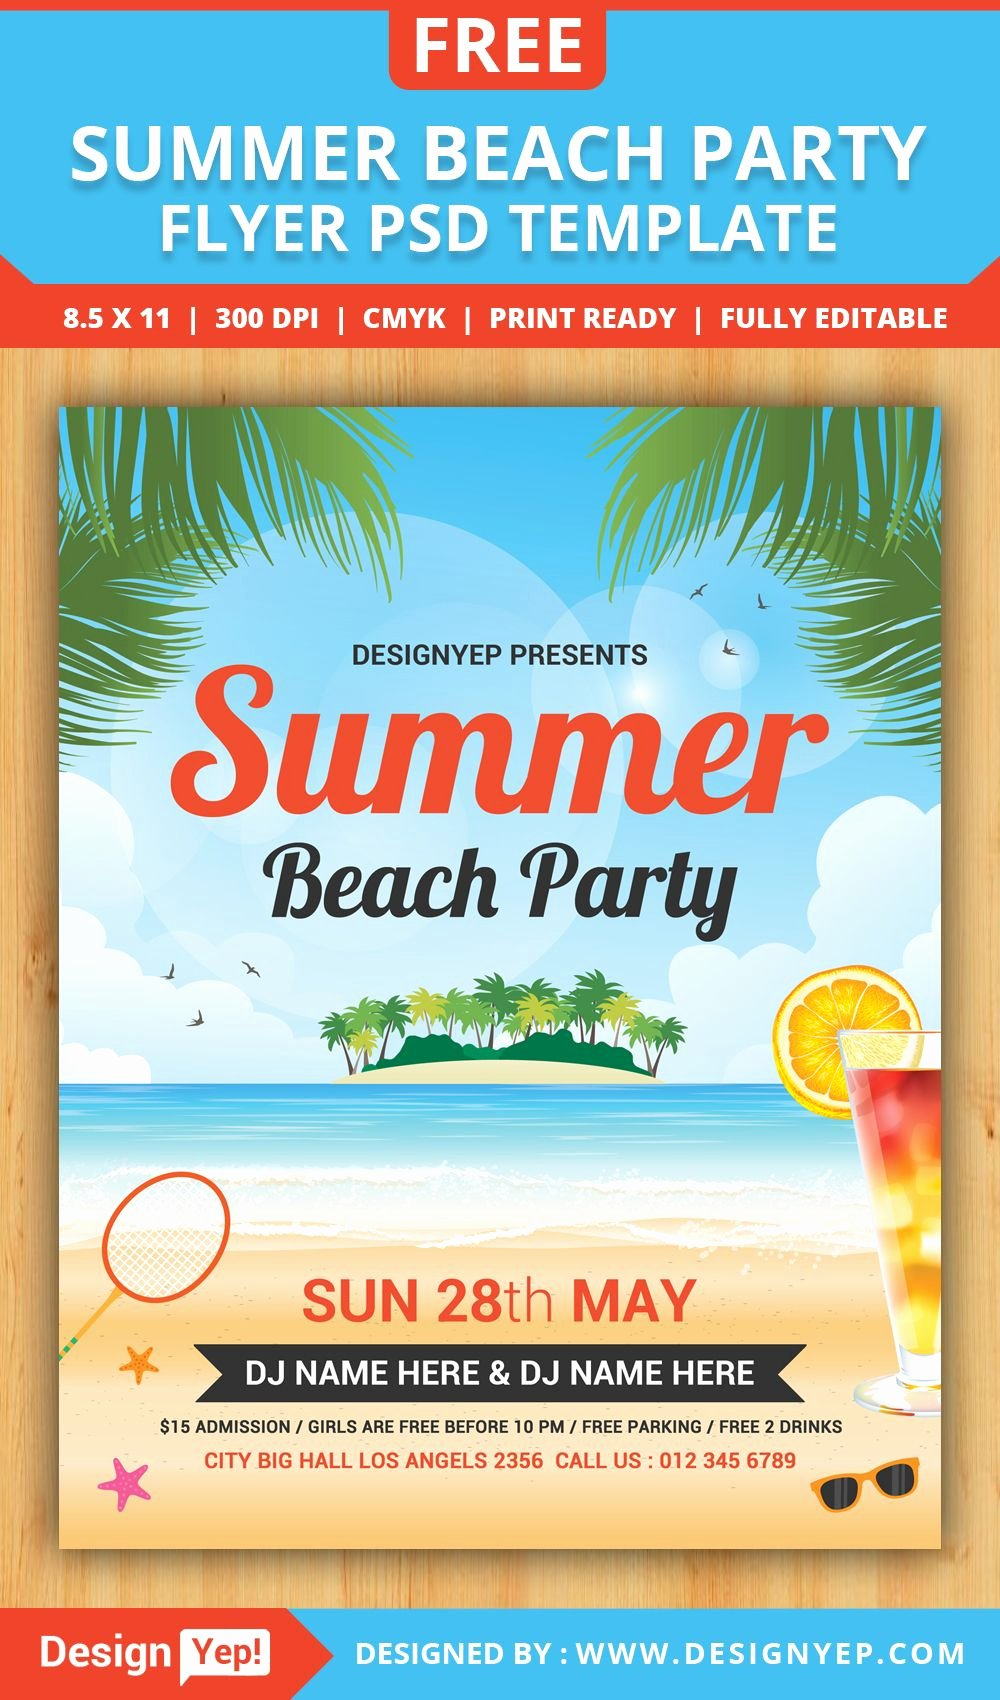 Summer Party Flyer Template Beautiful Free Summer Beach Party Flyer Psd Template Desingyep